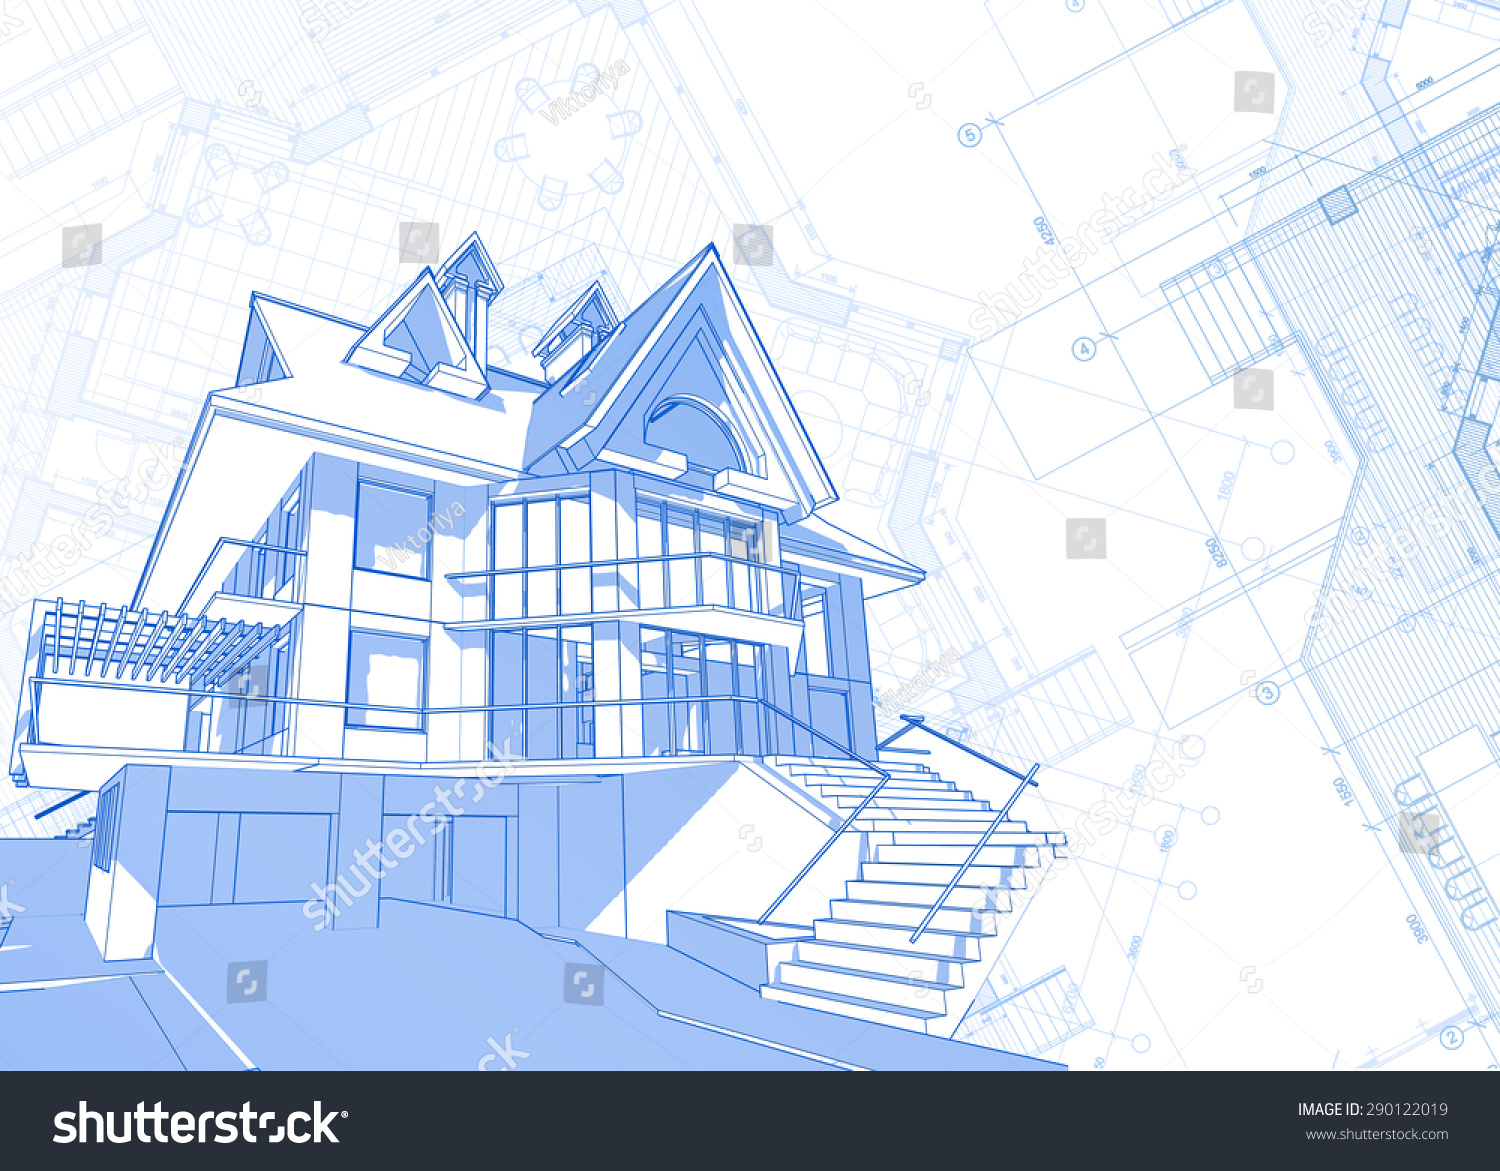 Architecture design blueprint house plans vector for Architecture blueprint